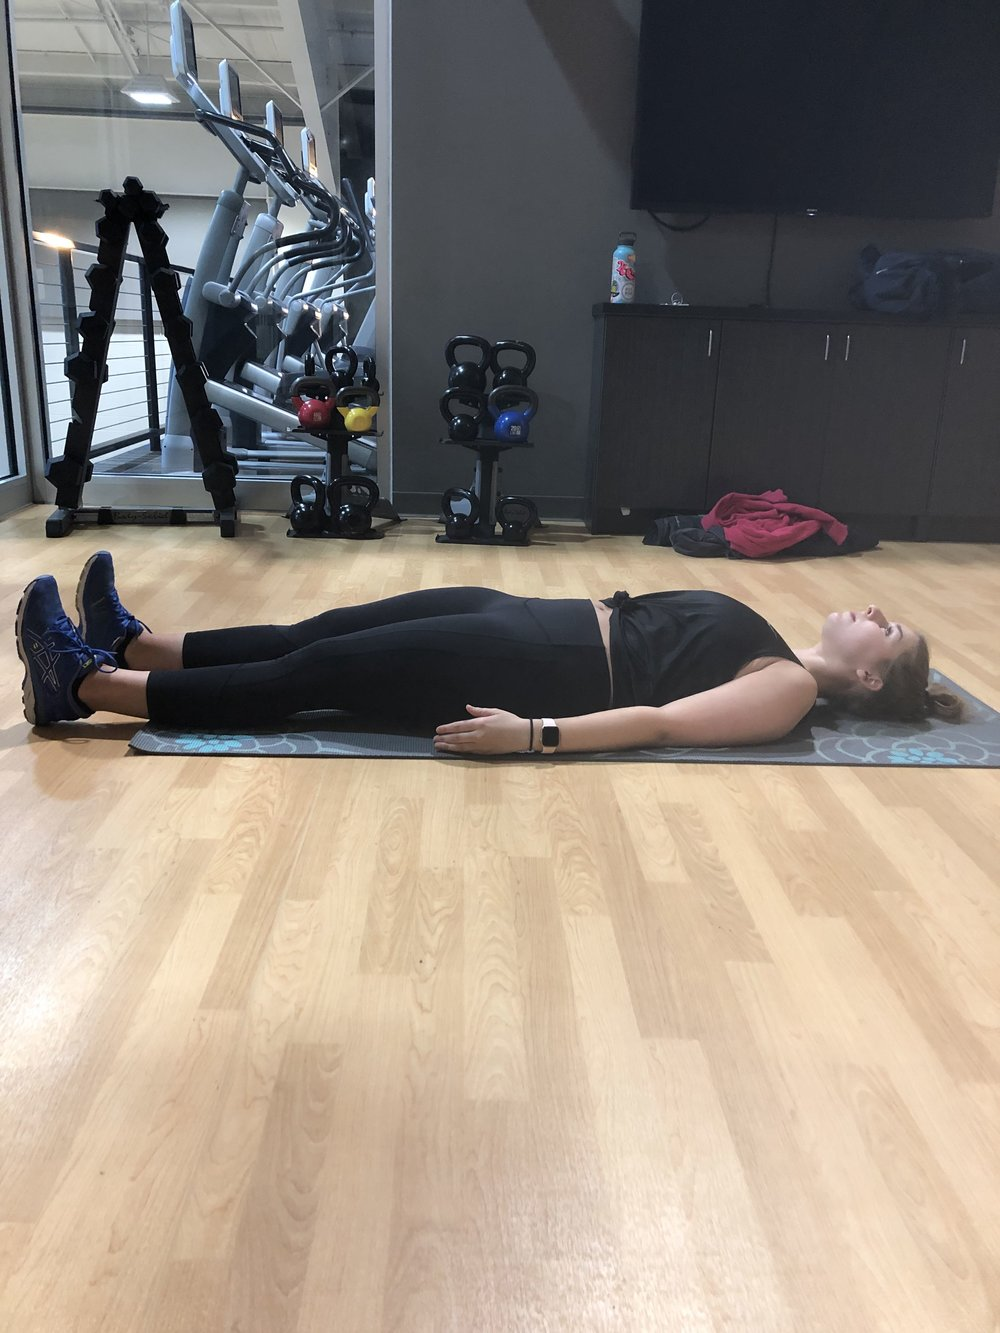 STRAIGHT LEG SIT-UPS: Starting position